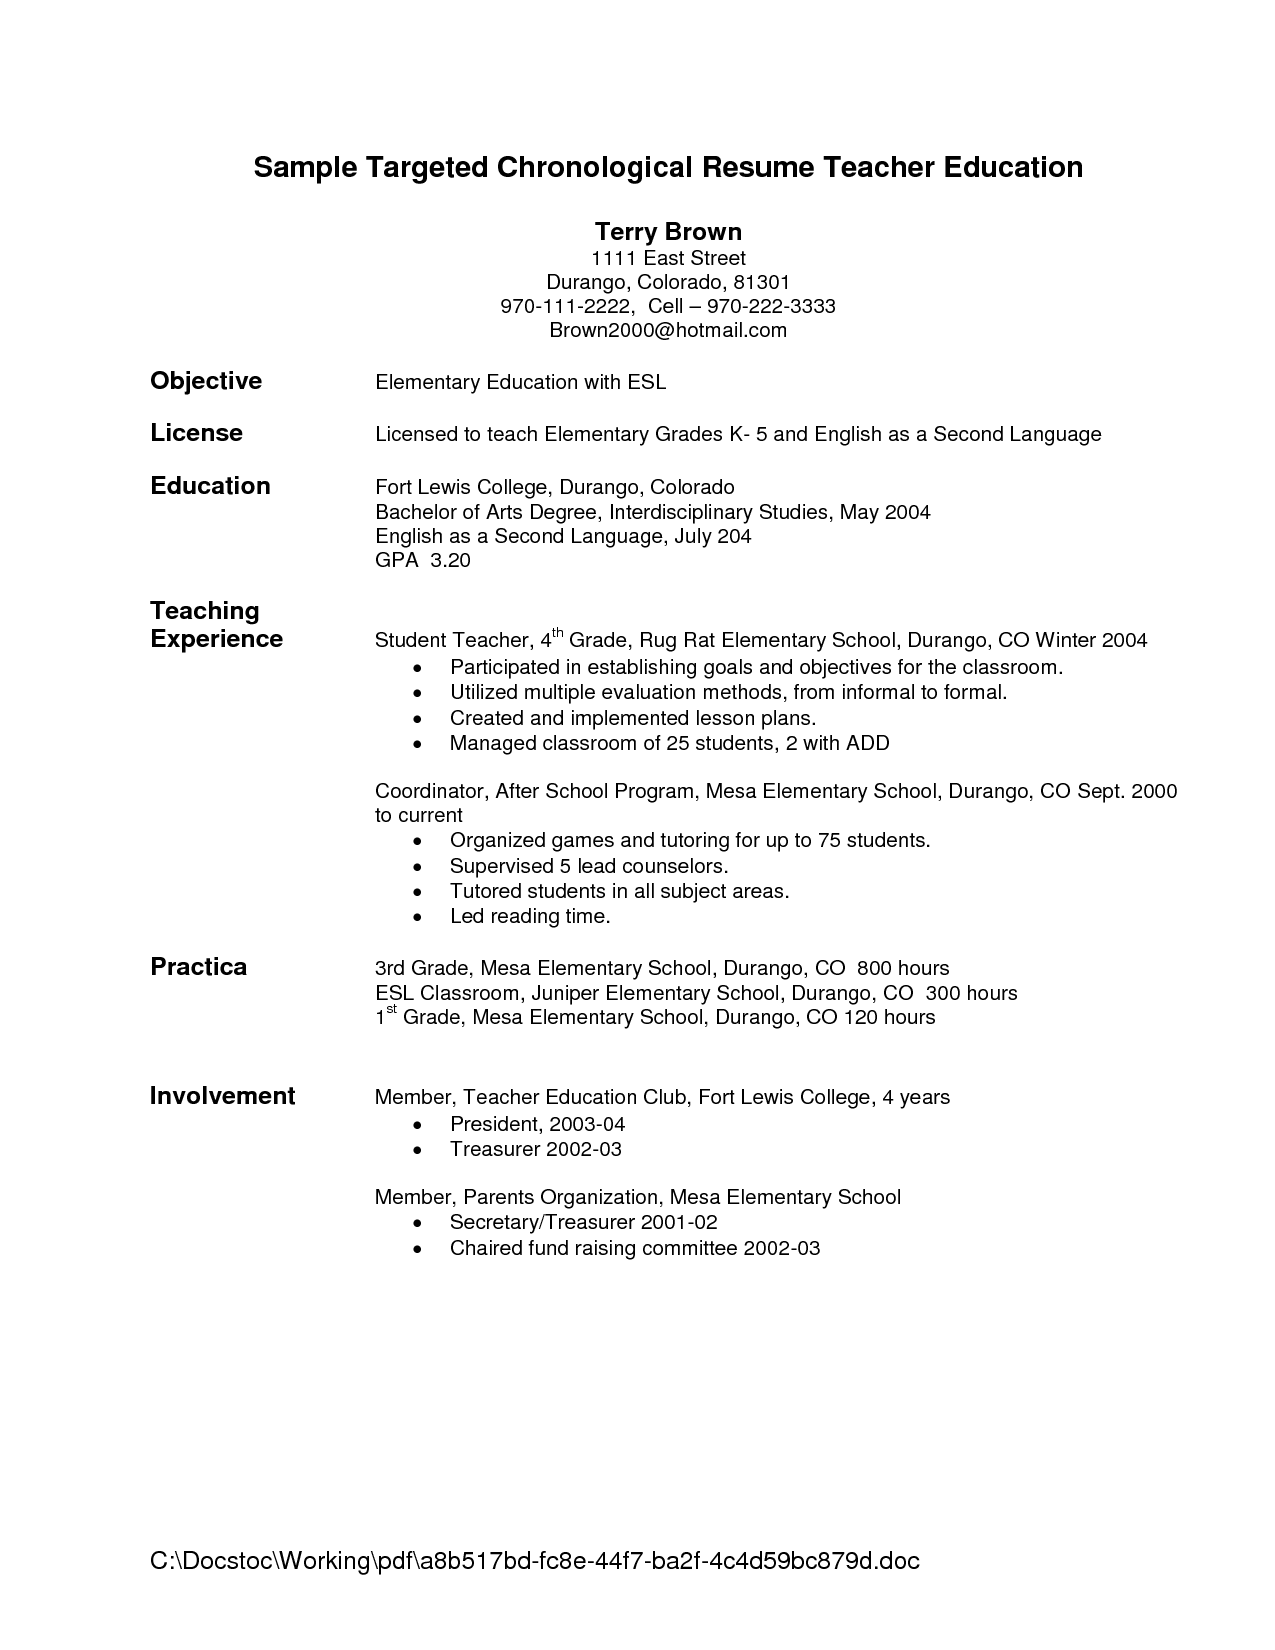 sample targeted chronological resume teacher education general objective resume by terry brown